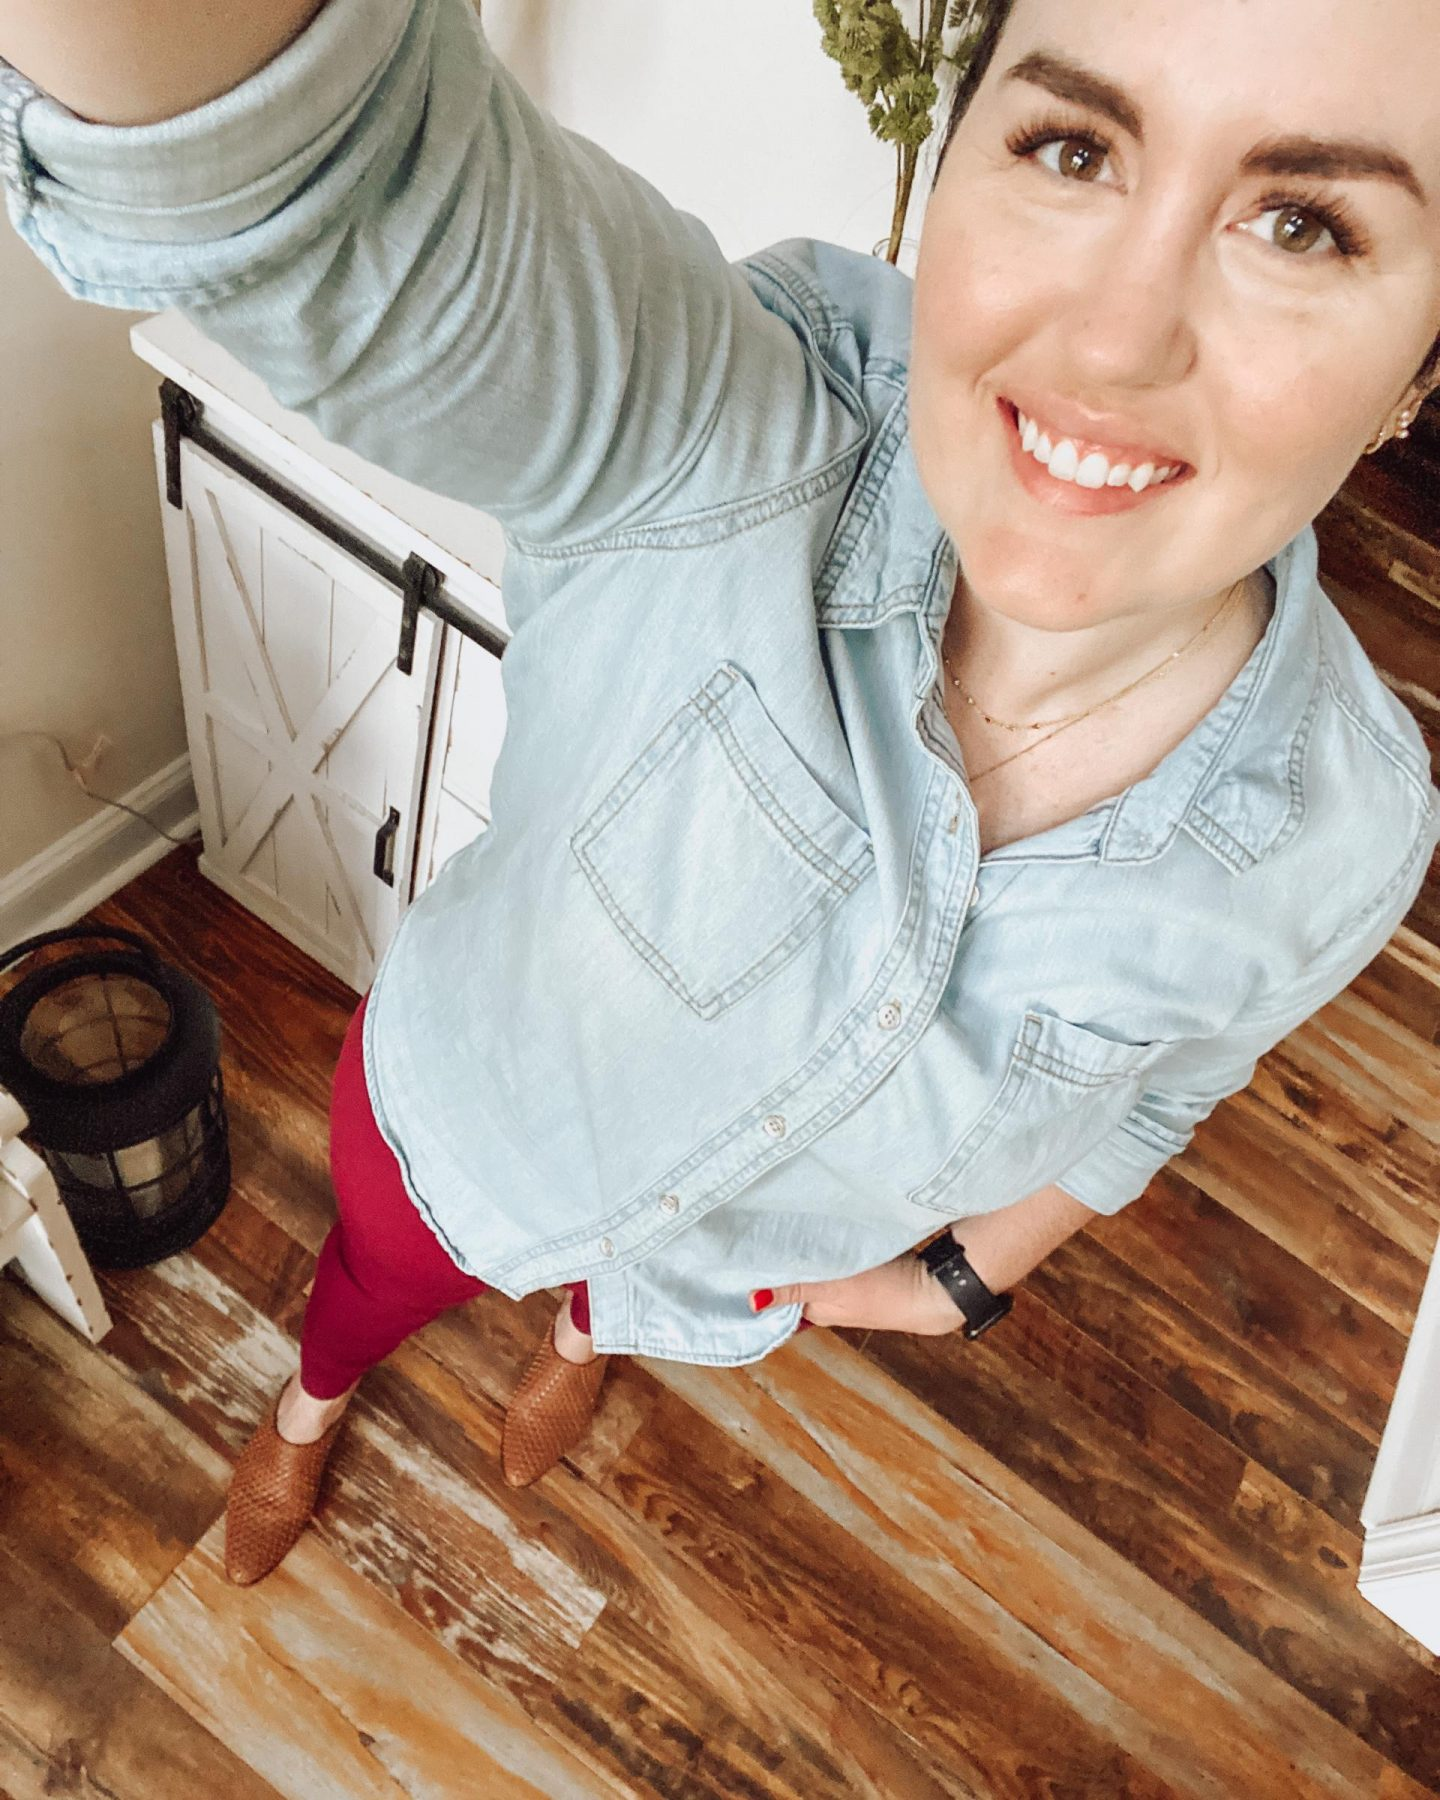 NC blogger Rebecca Lately is sharing her favorite workwear shoes heading into fall and winter. If you need workwear inspo, check this out!